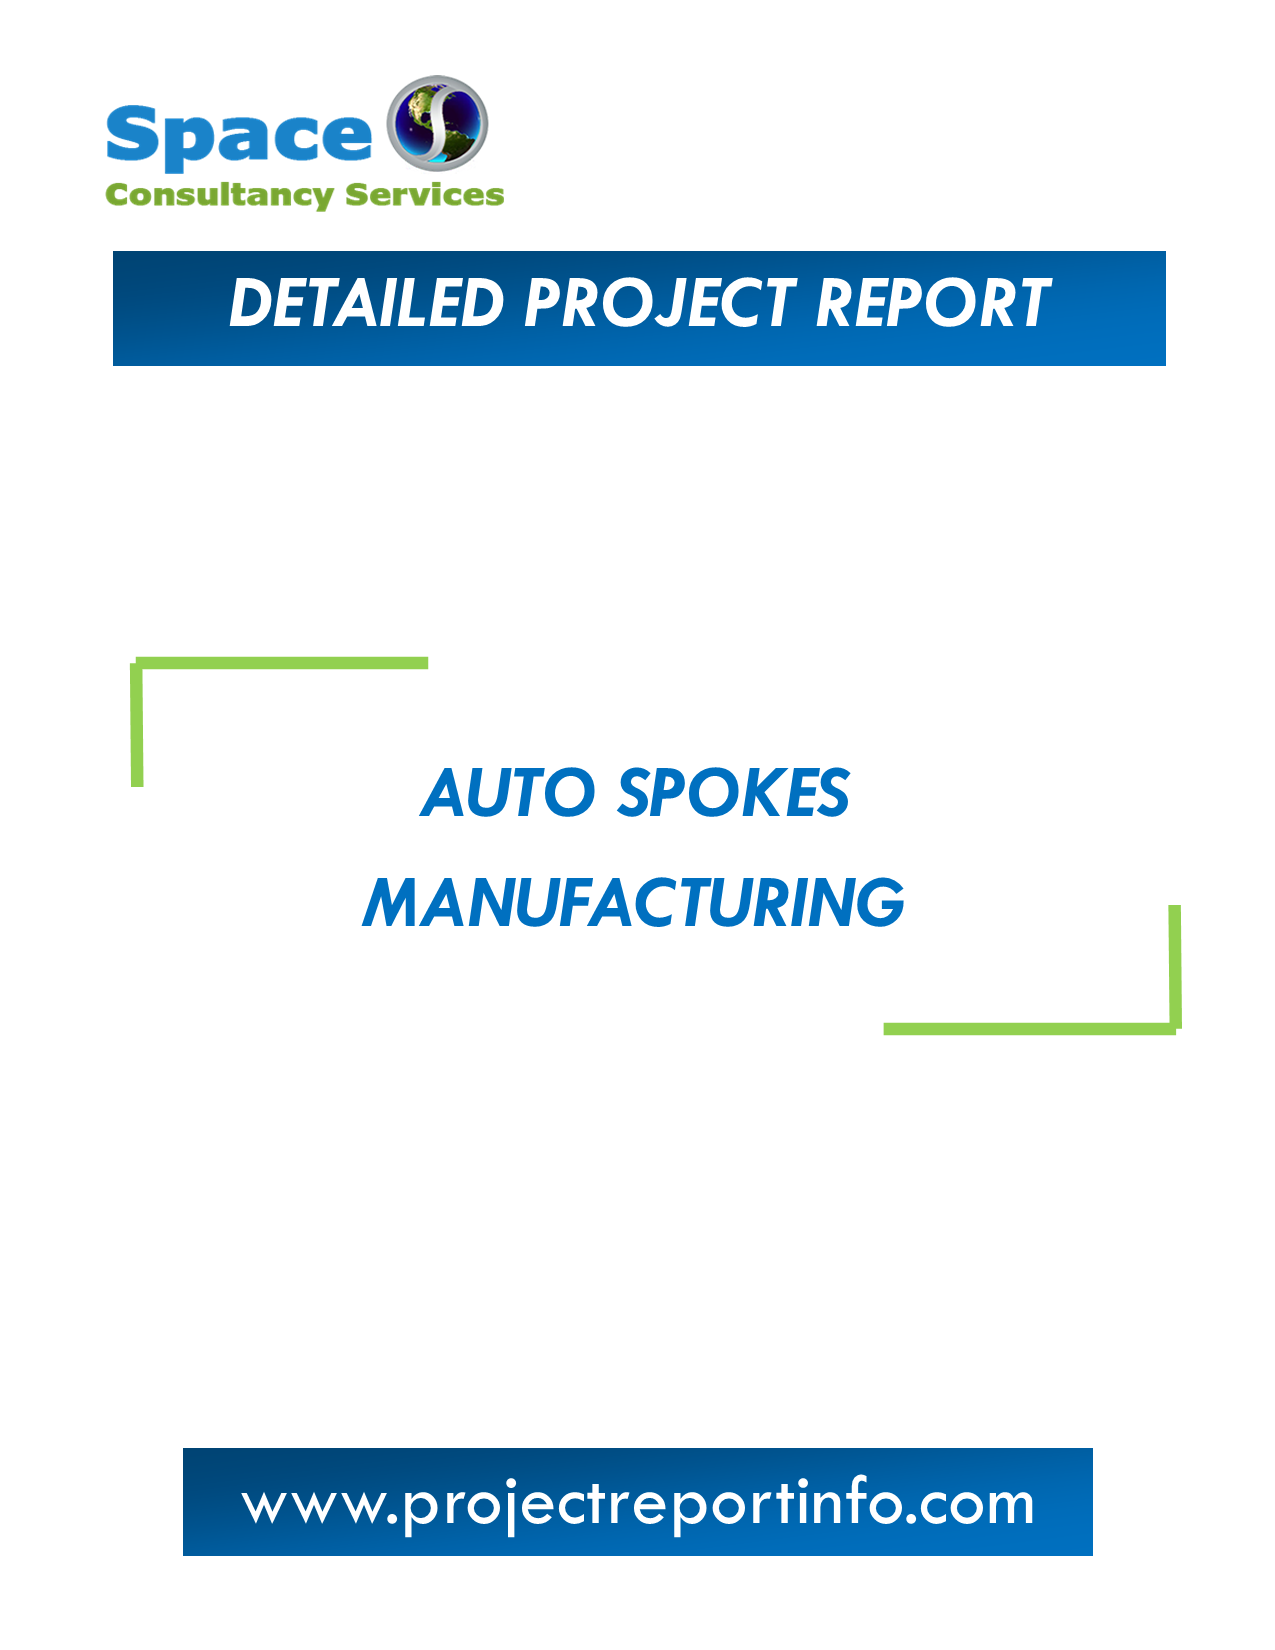 Auto Spokes Manufacturing Project Report